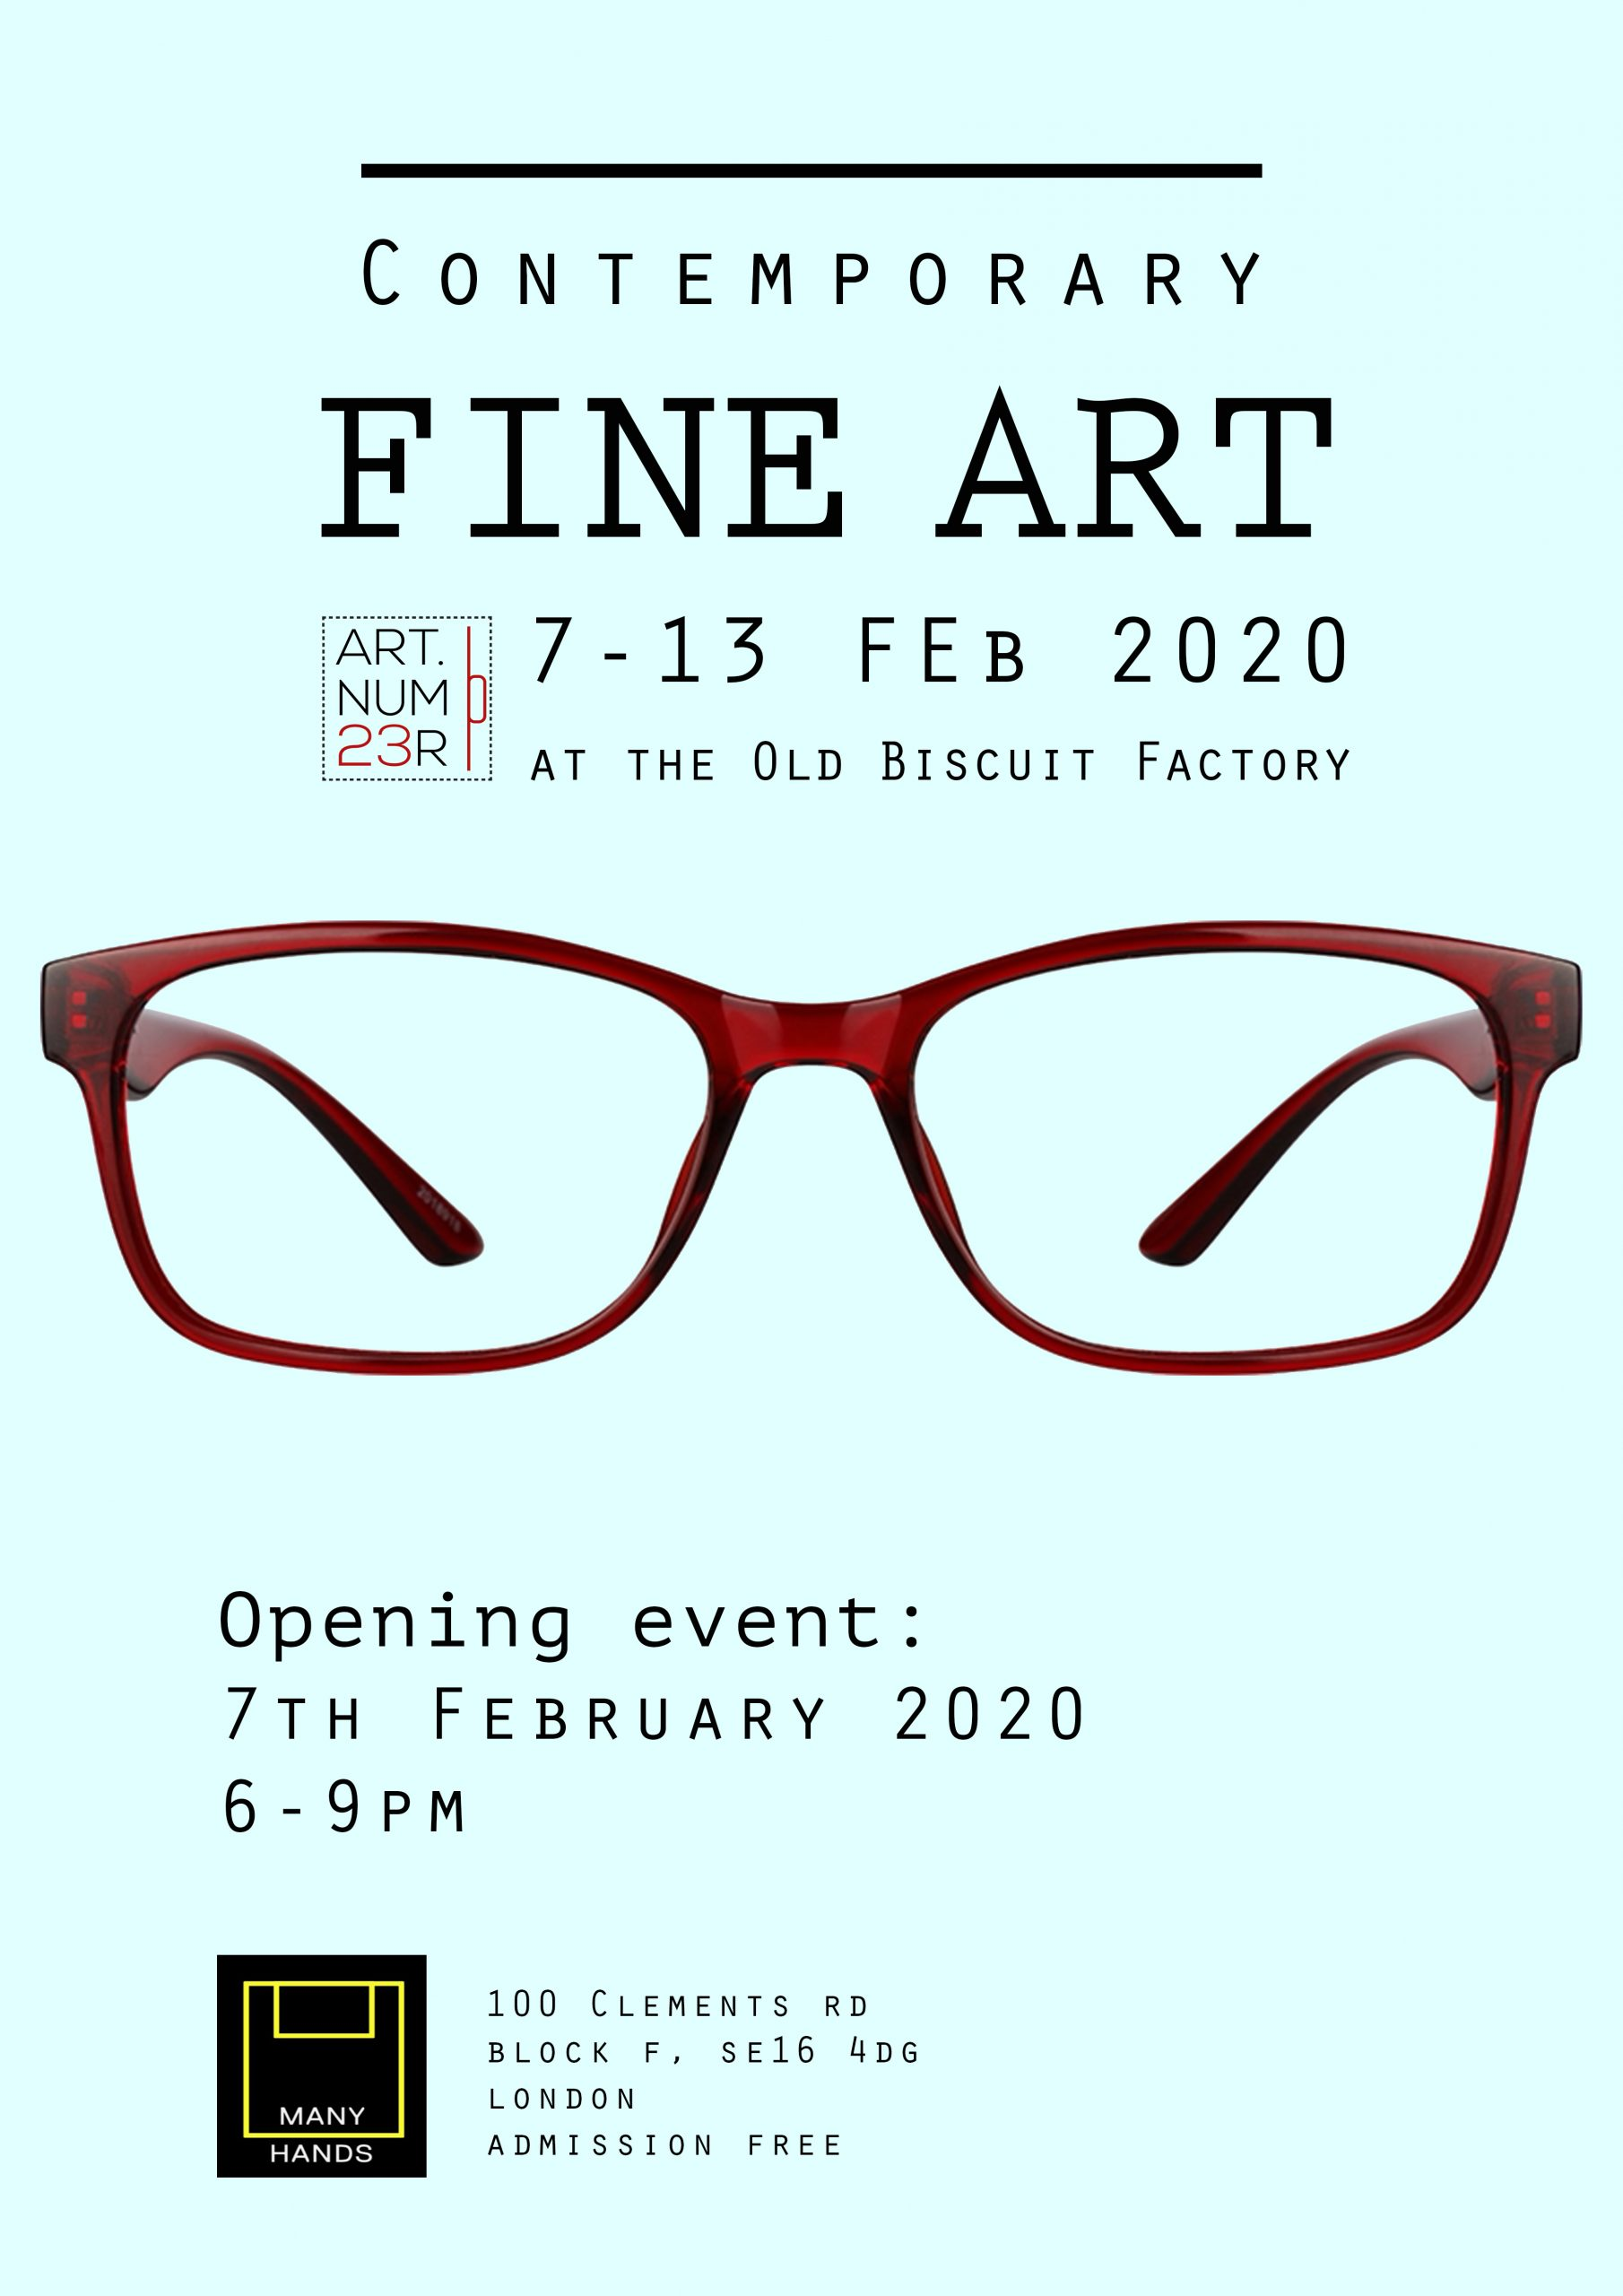 Contemporary Fine Art exhibition at The Old Biscuit Factory